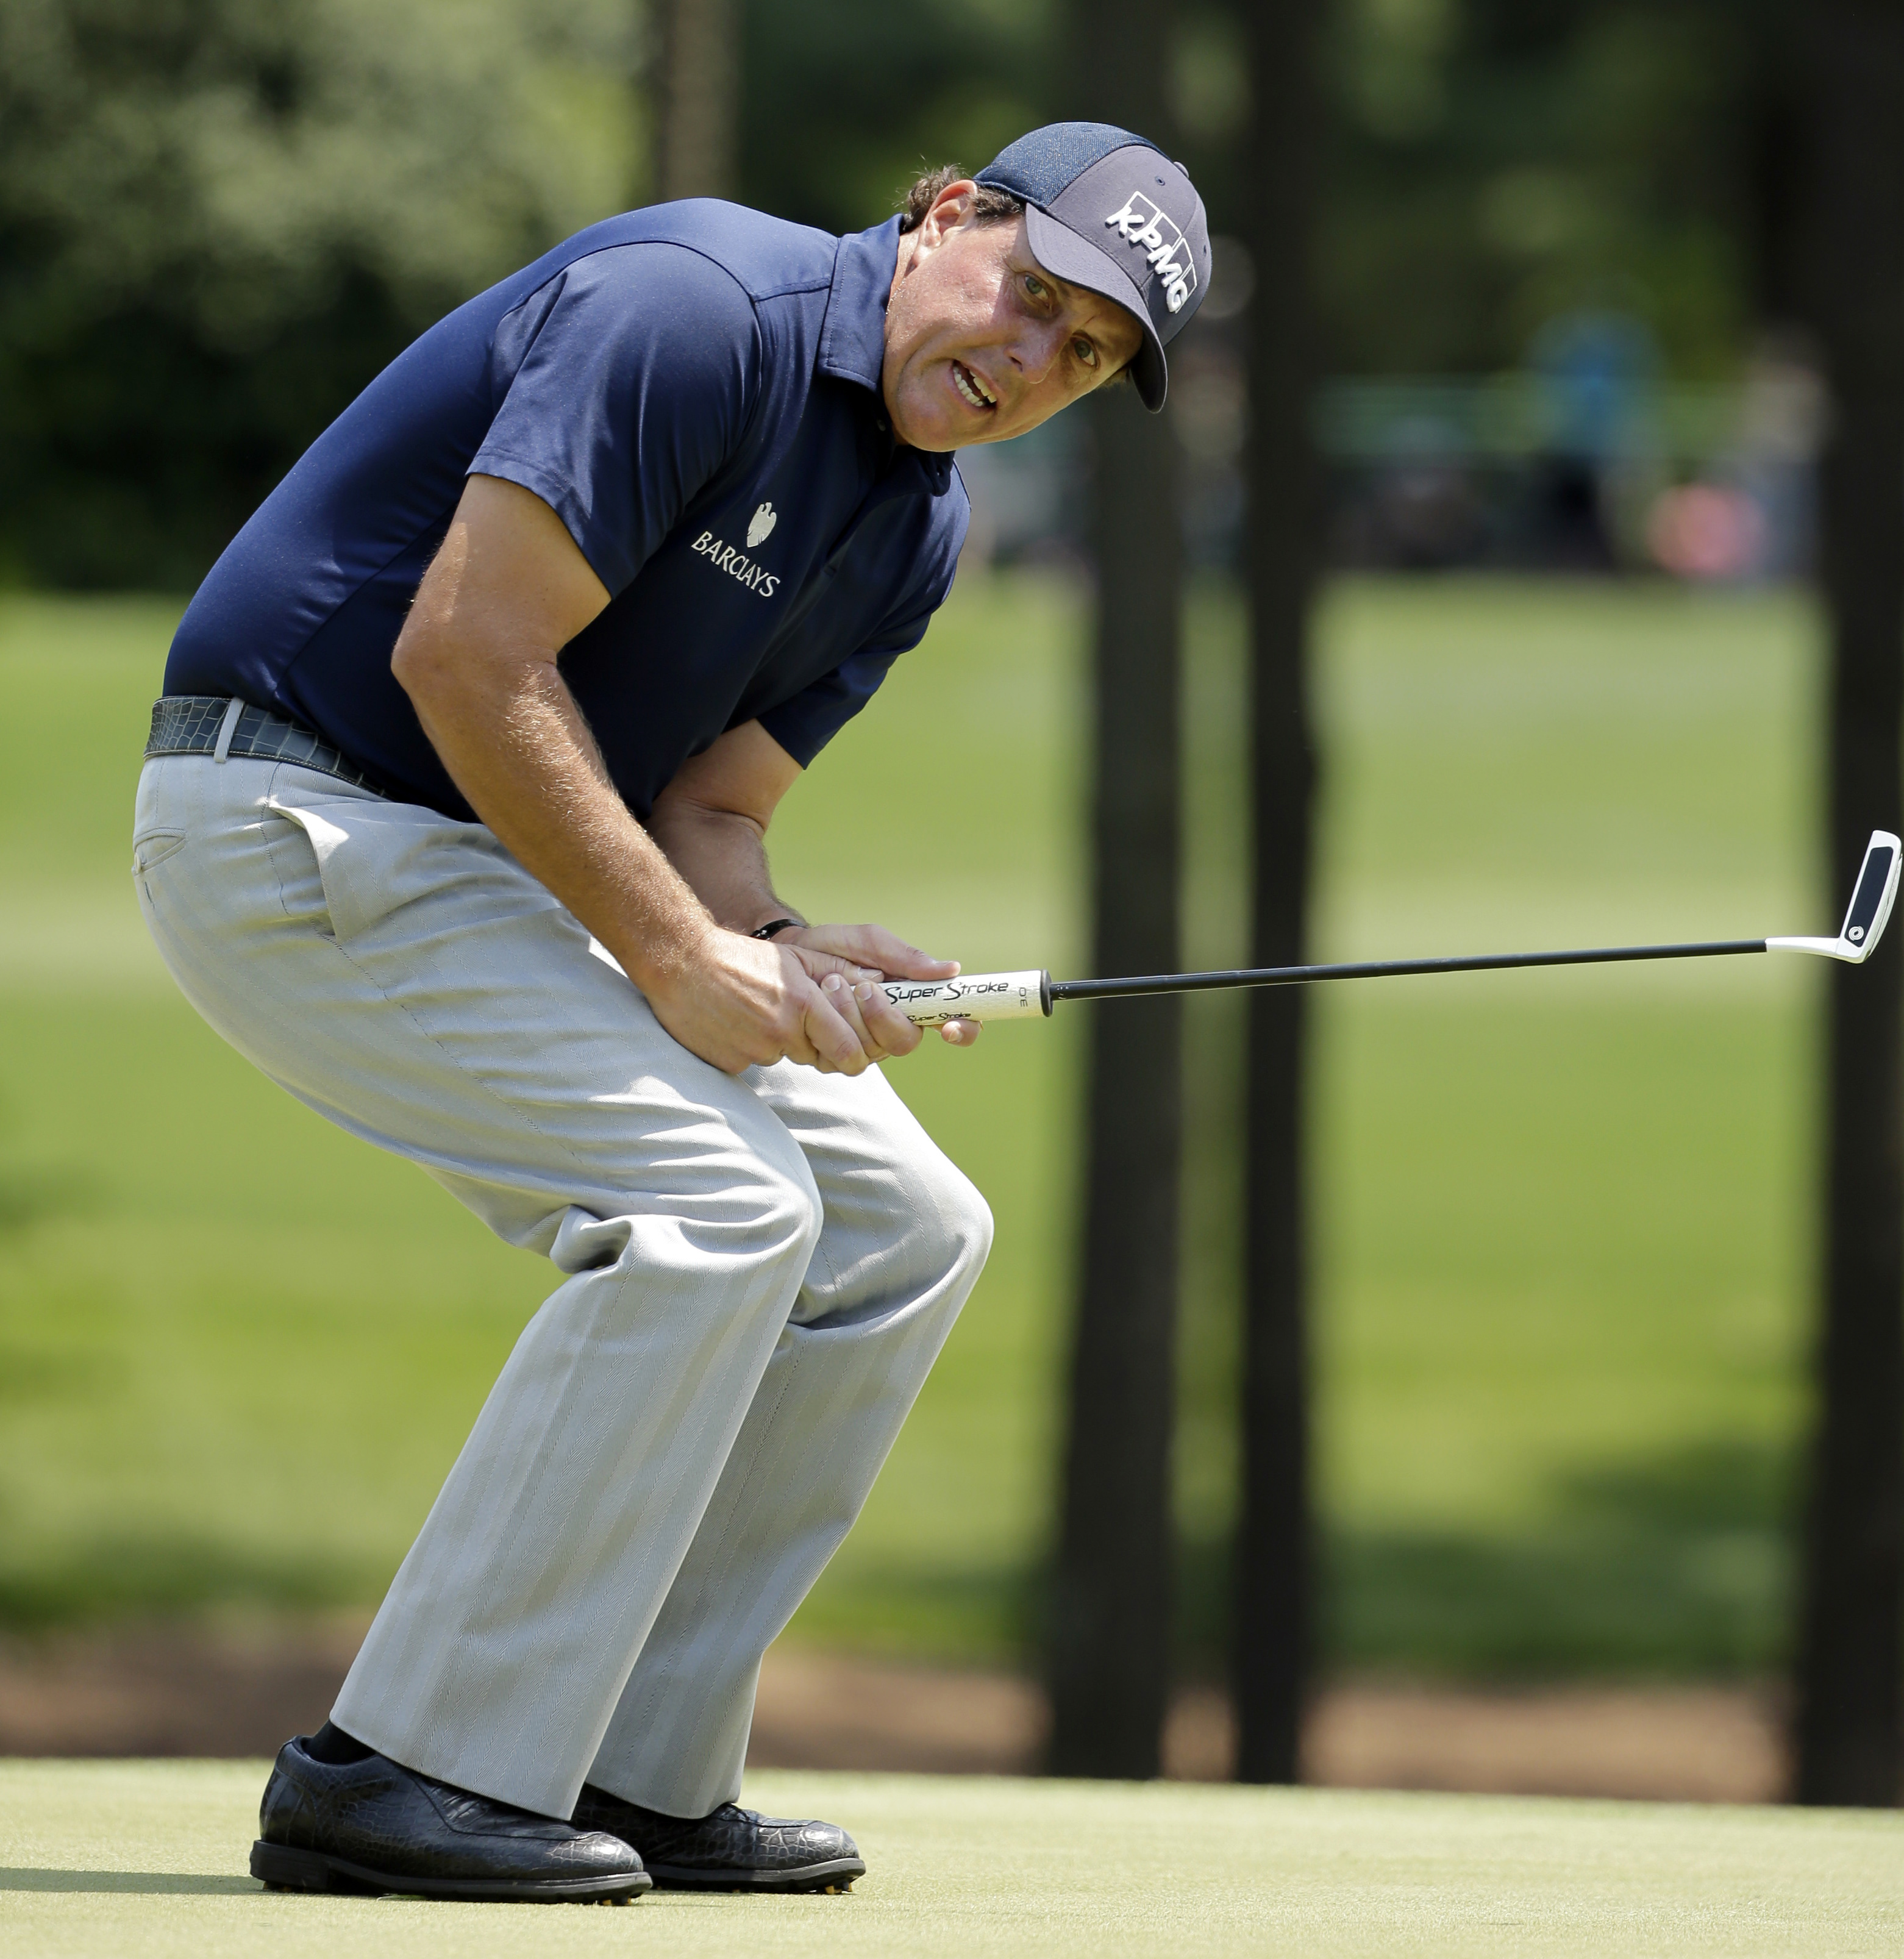 FILE - In this May 7, 2016, file photo, Phil Mickelson reacts as he misses a putt on the third hole during the third round of the Wells Fargo Championship golf tournament at Quail Hollow Club in Charlotte, N.C. The Securities And Exchange Commission is fi